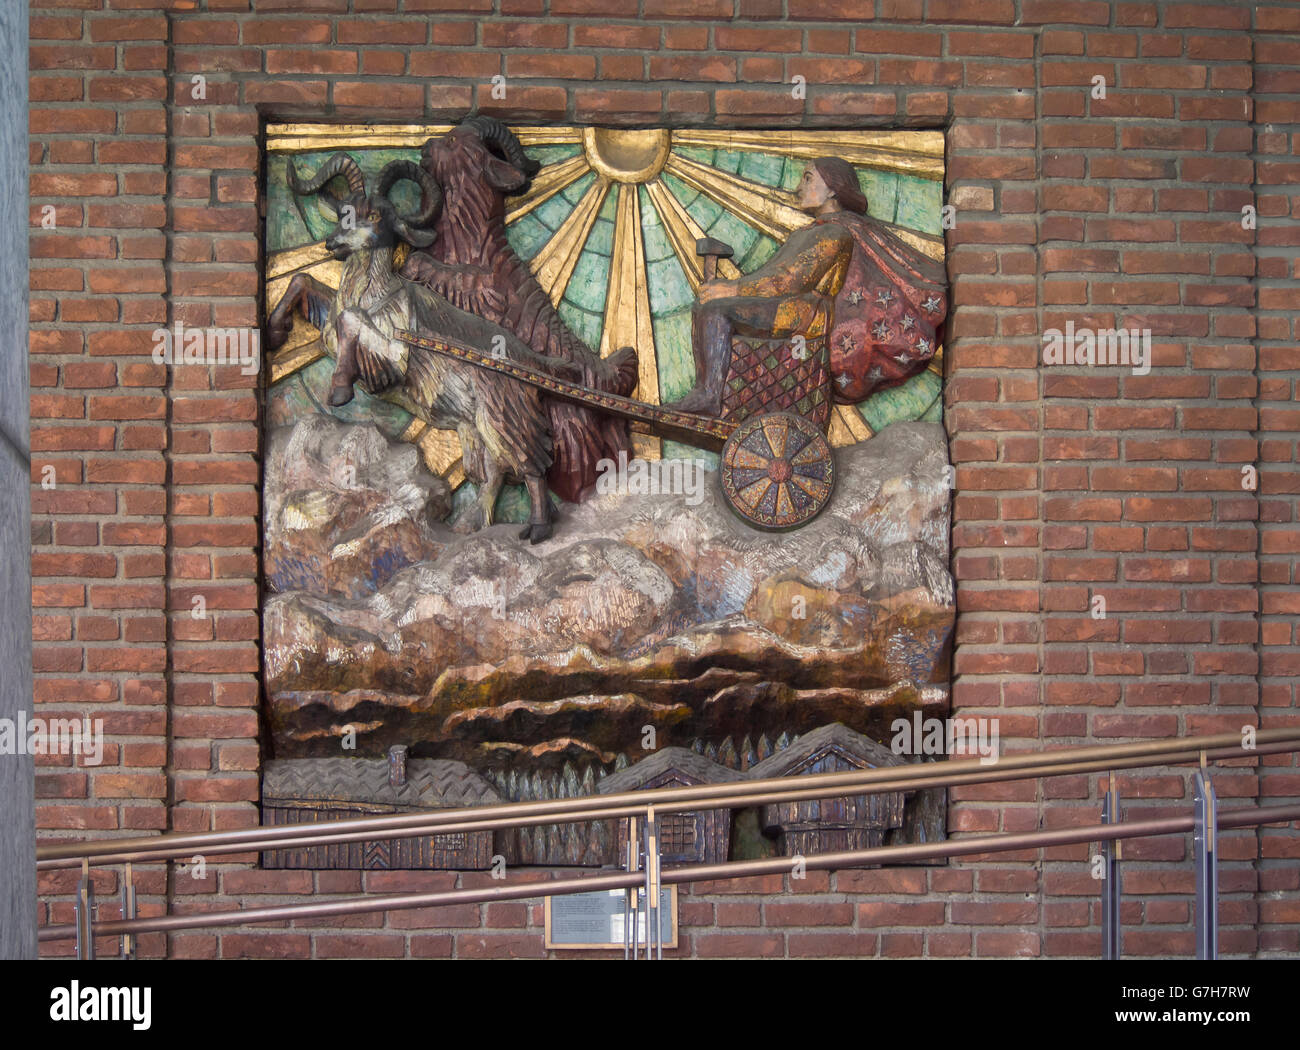 Woodcarving relief on the exterior facade of the Oslo City hall in Norway by Dagfin Werenskiold, the Norse god Thor - Stock Image